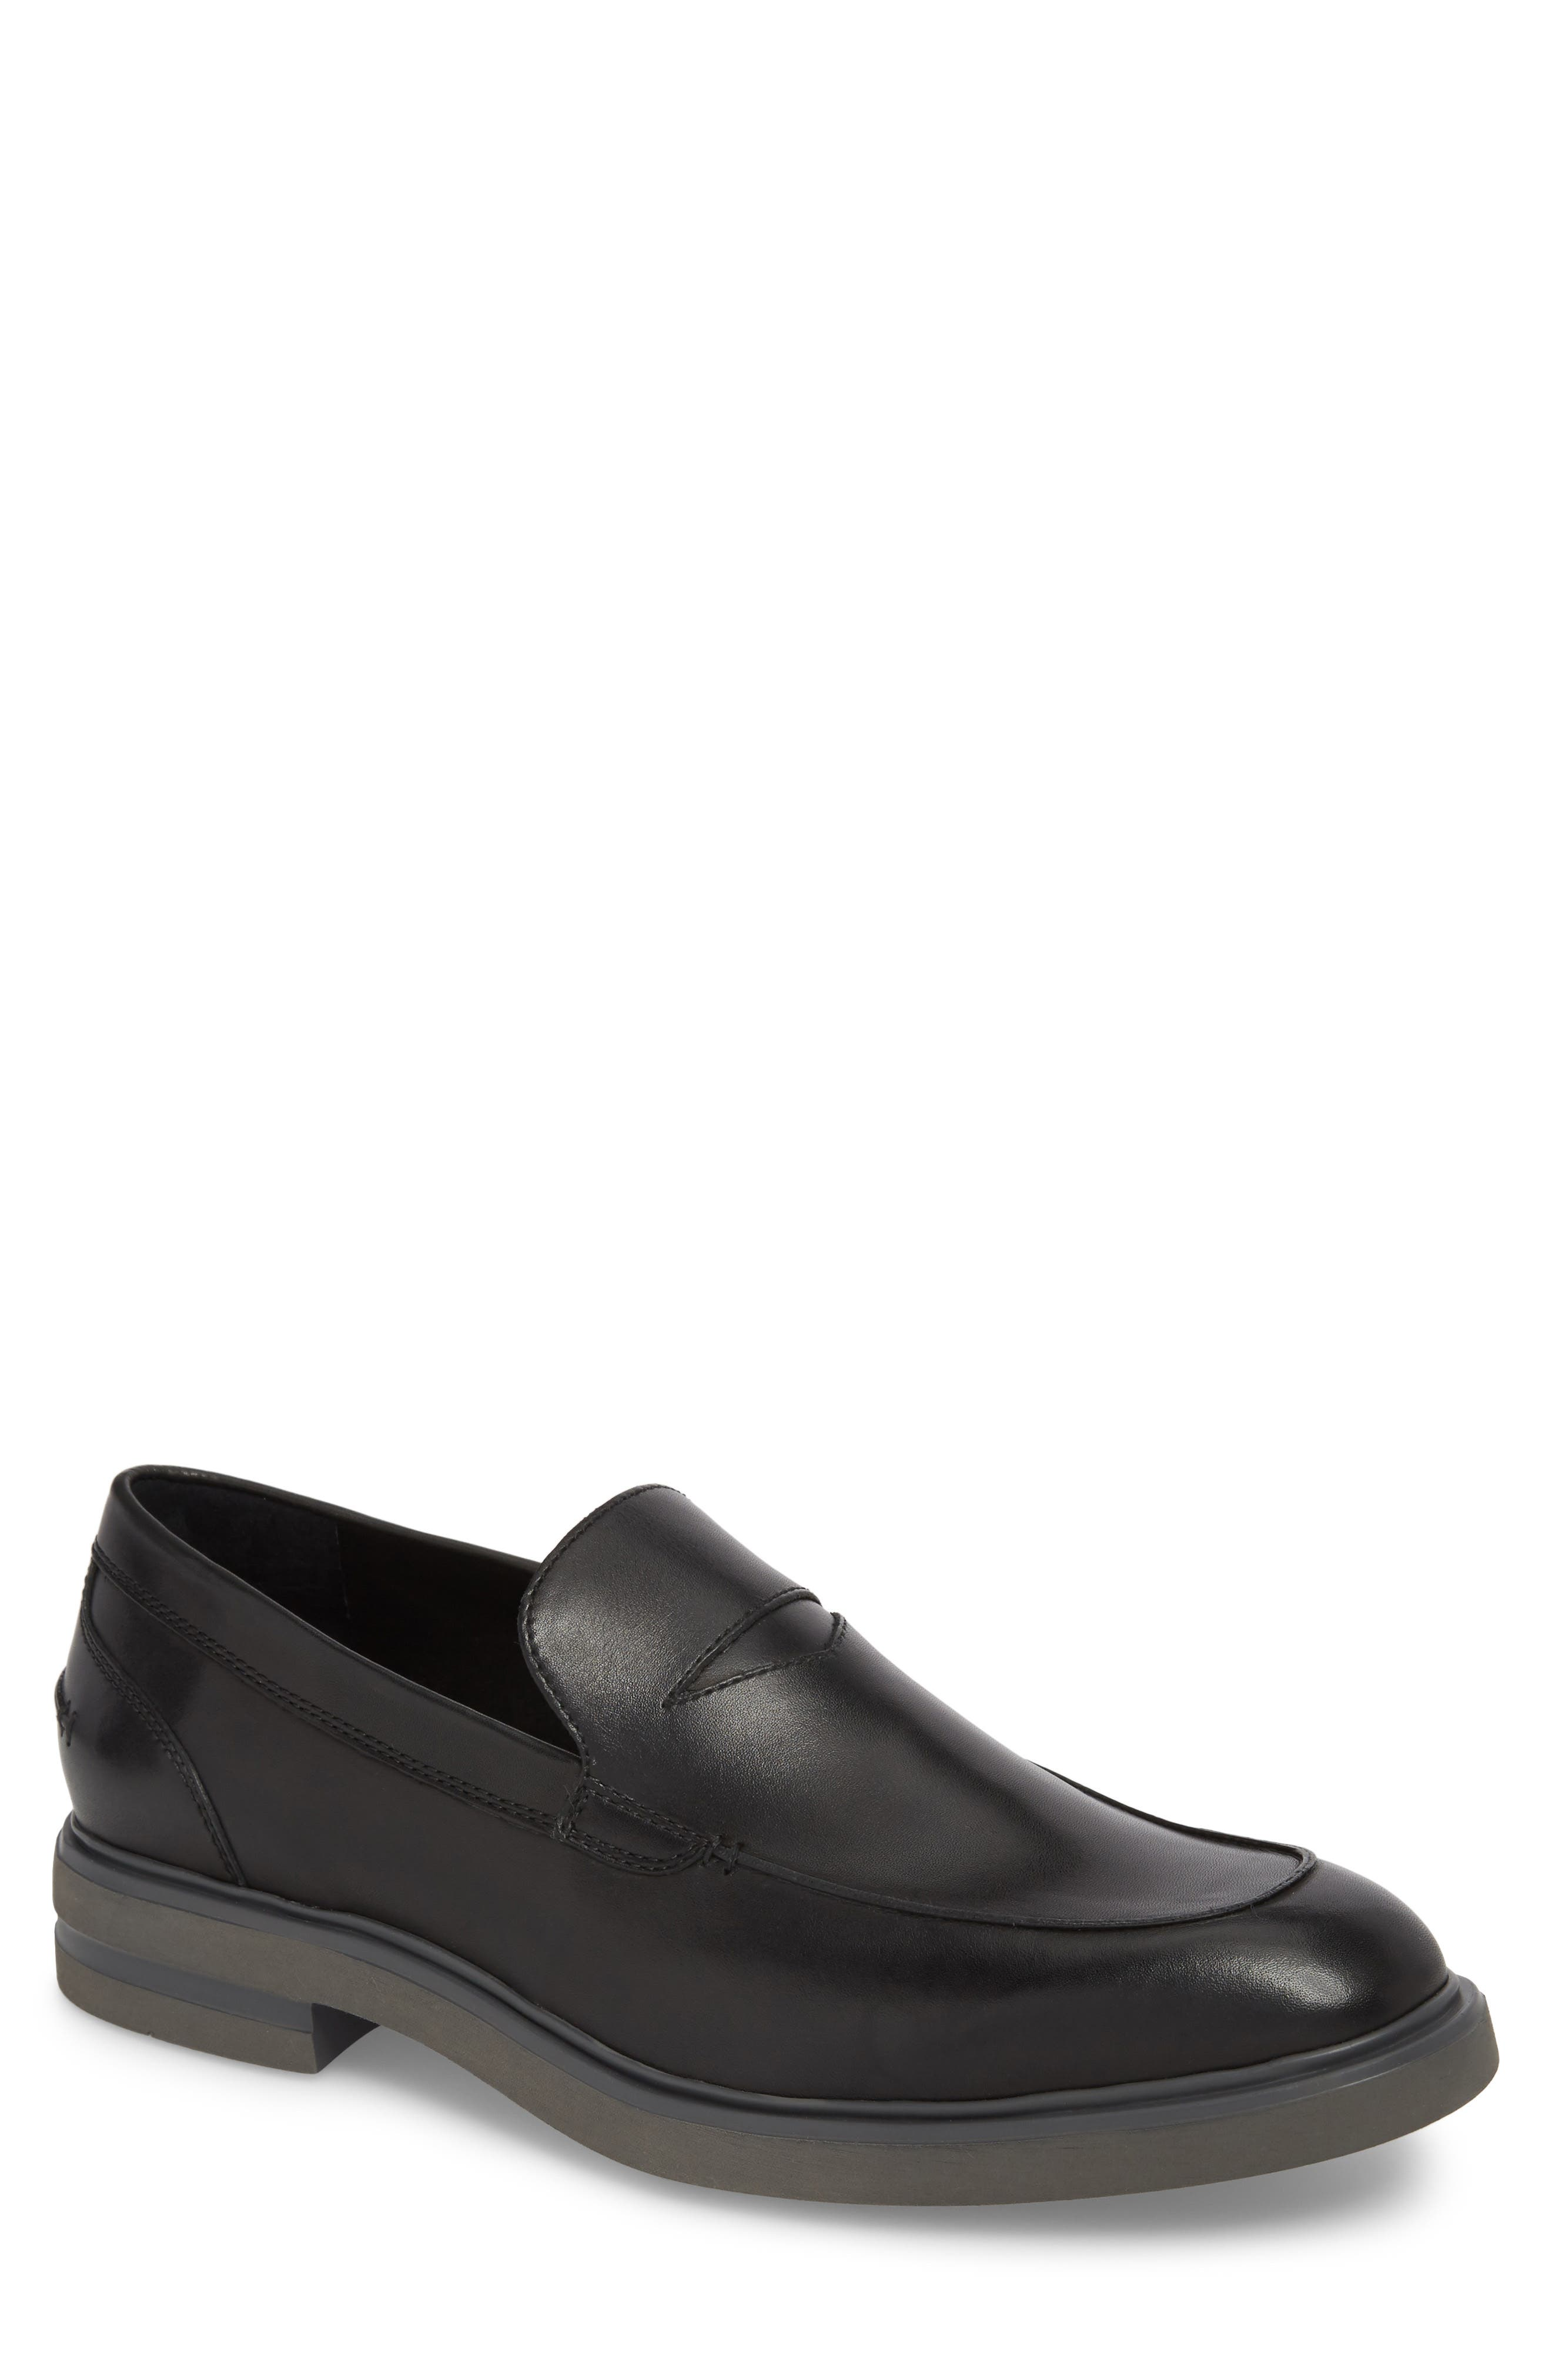 Edwyn Deconstructed Penny Loafer,                         Main,                         color, Black Leather